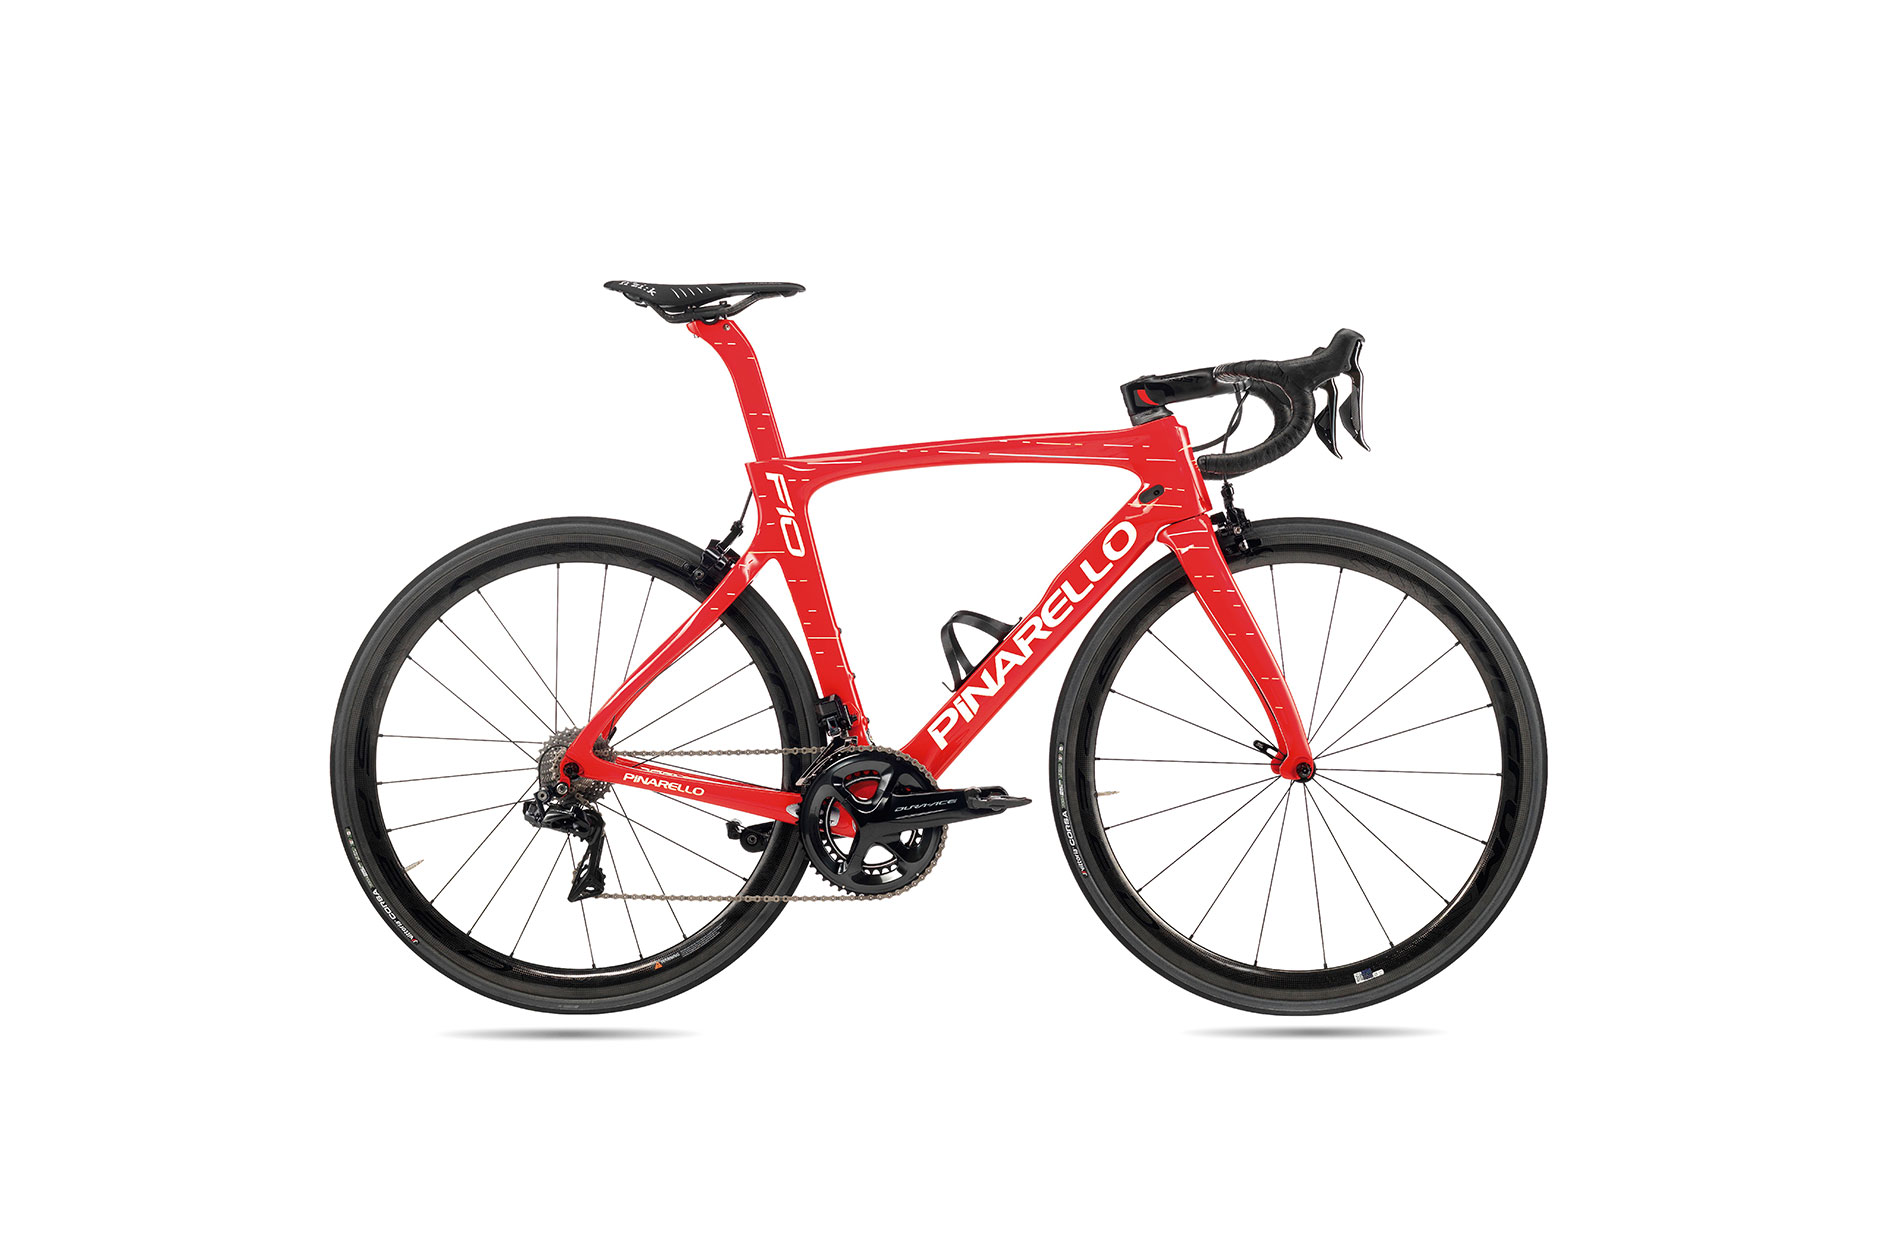 PINARELLO_F10_934_Red_White